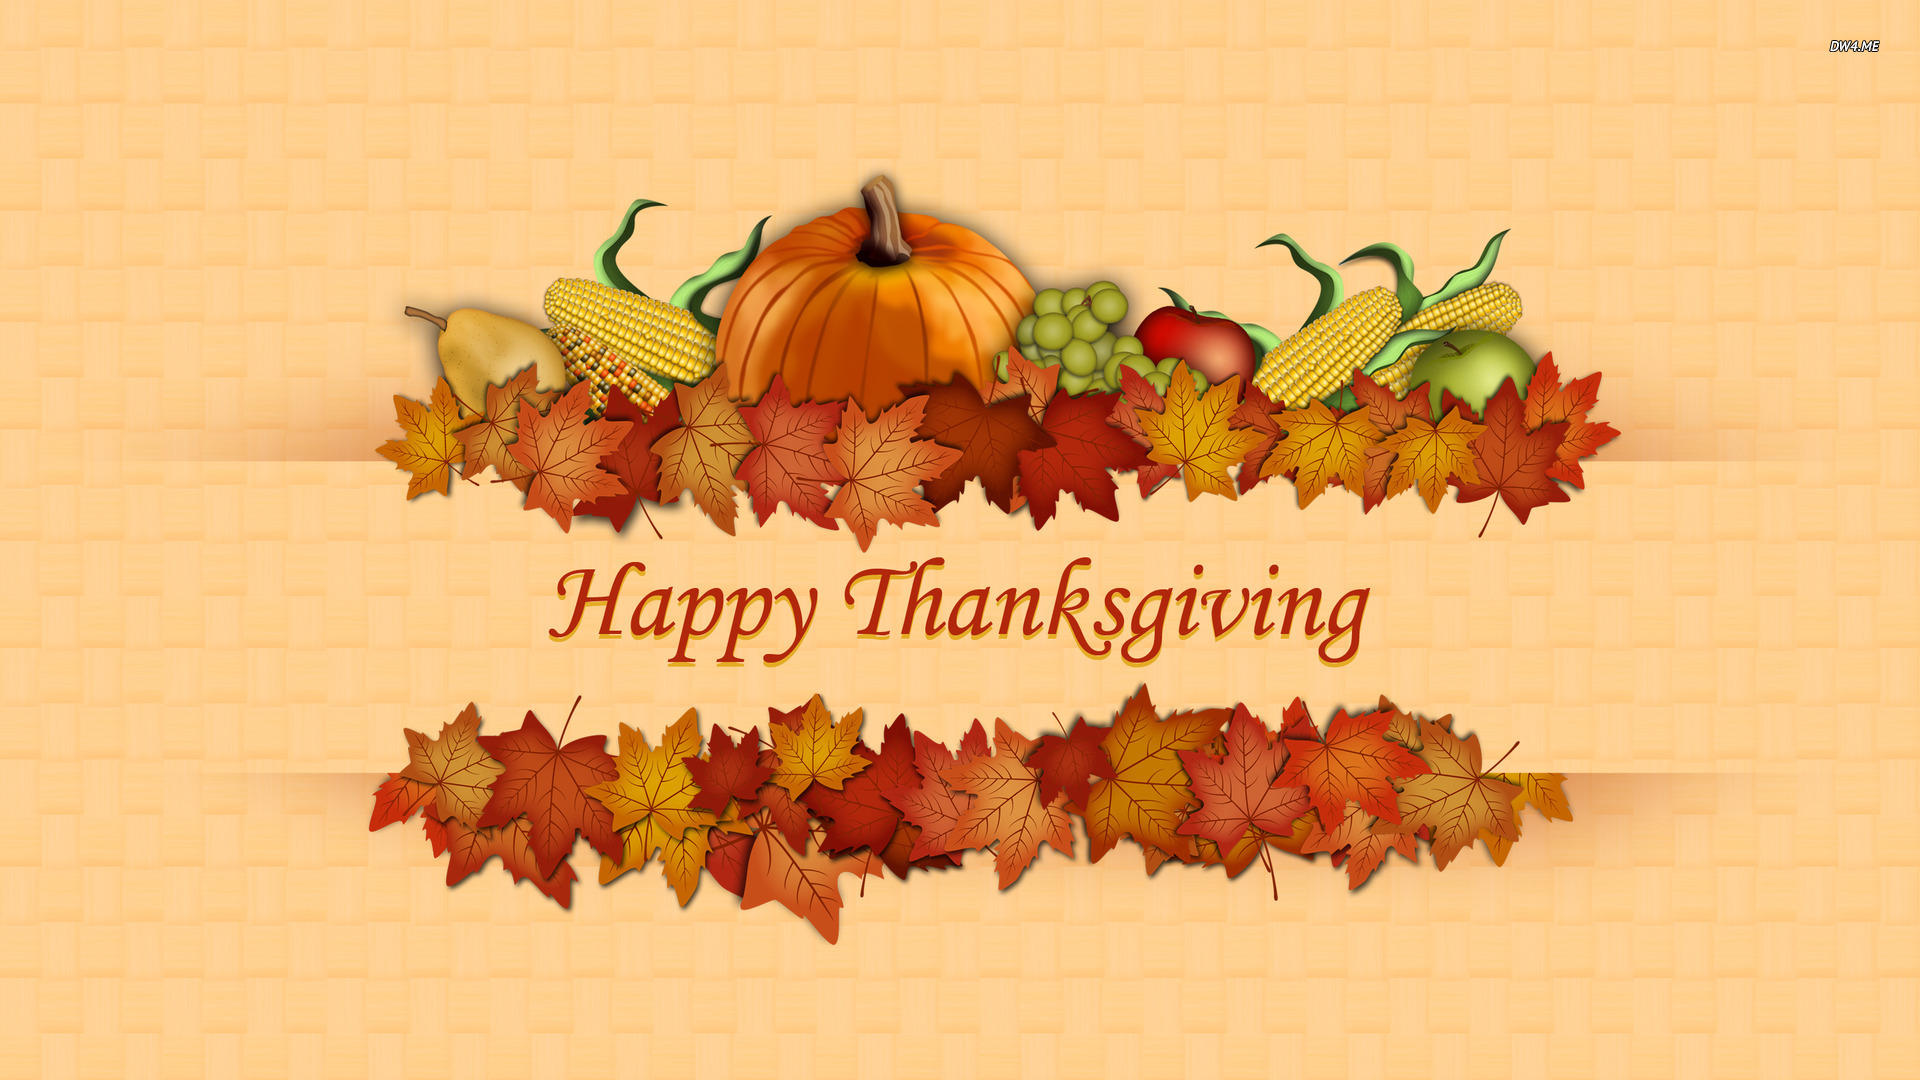 Thanksgiving-Pictures-Free-2.jpg